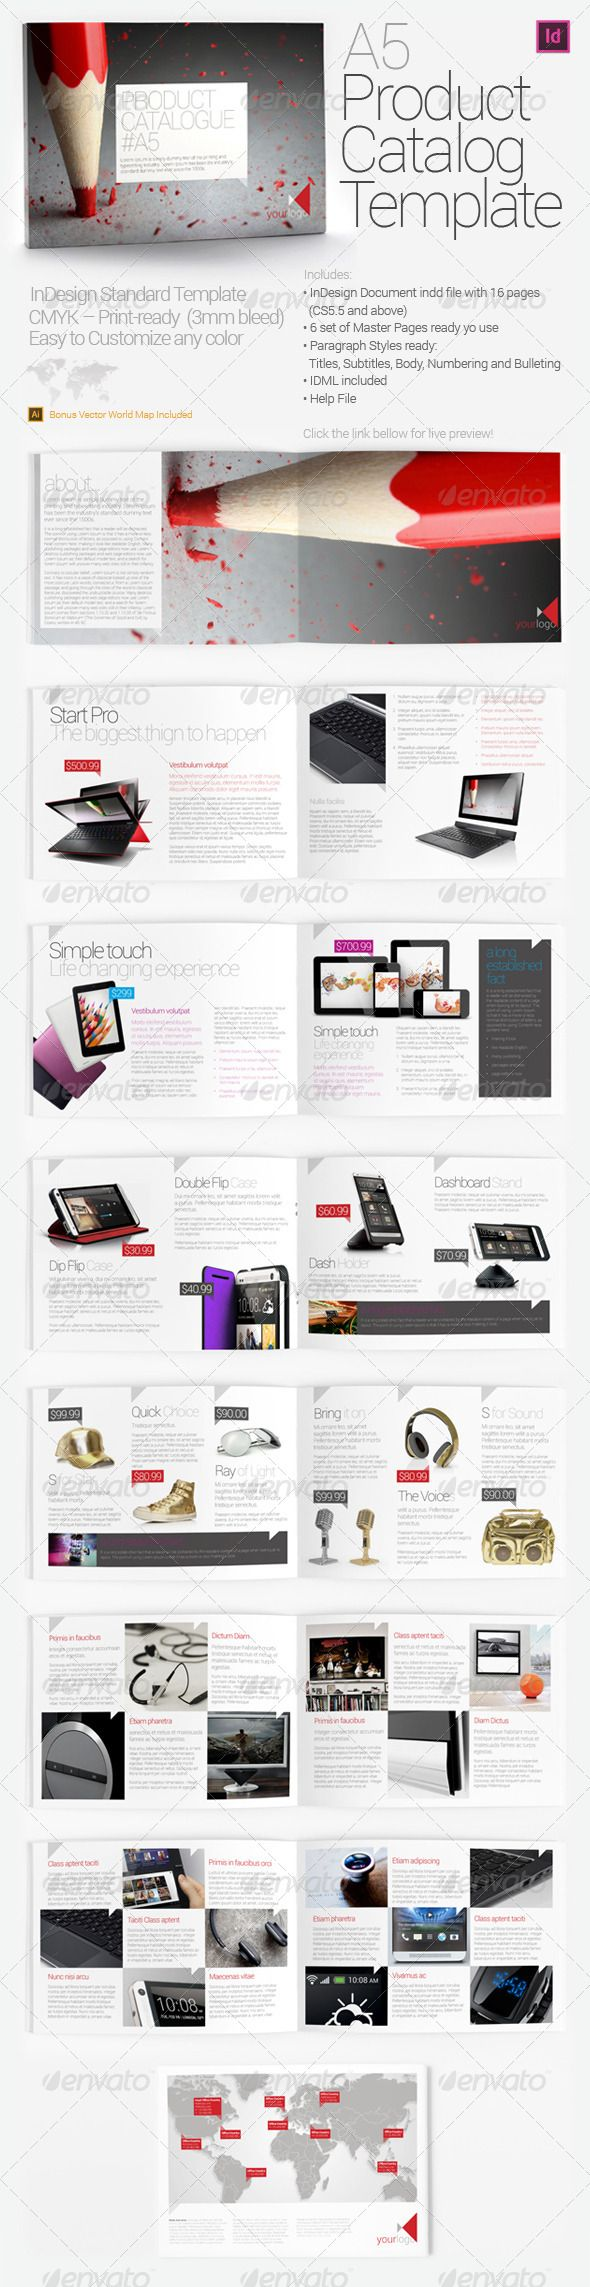 A5 Product Catalog Template  #GraphicRiver        A5 Product Catalog Template InDesign Standard Brochure Template.